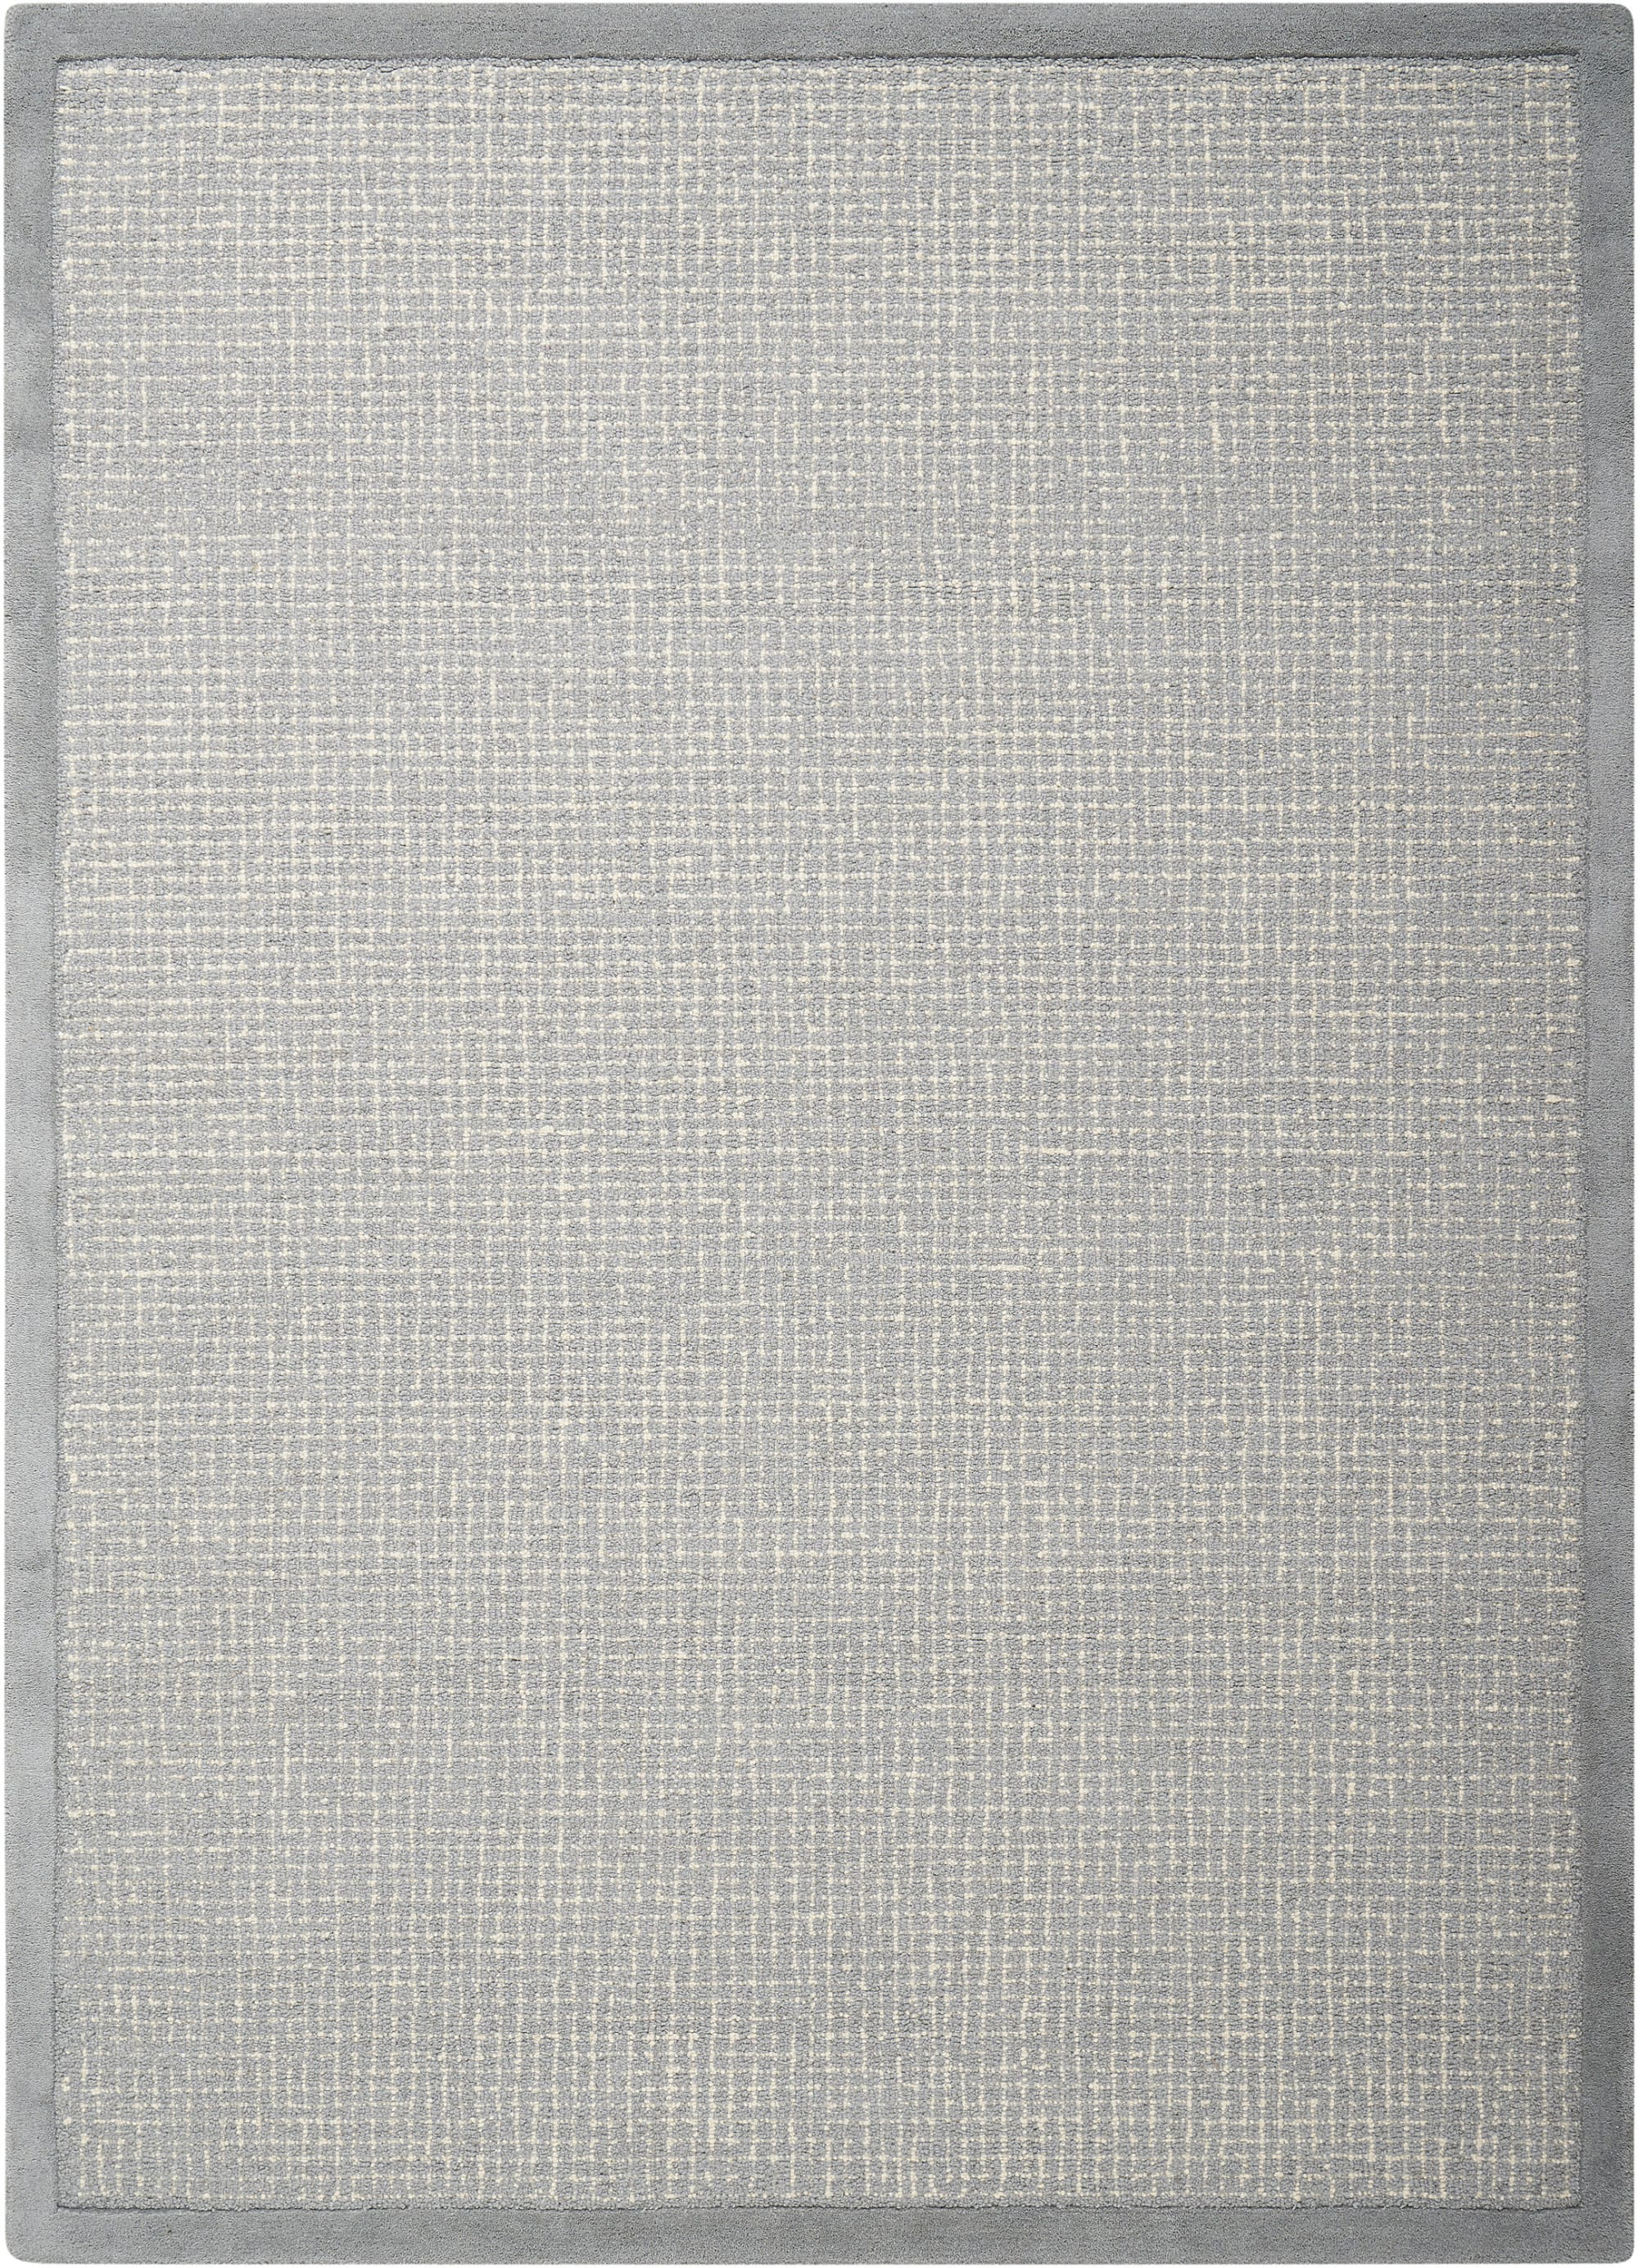 River Brook Rug KI809 Light Blue/Ivory